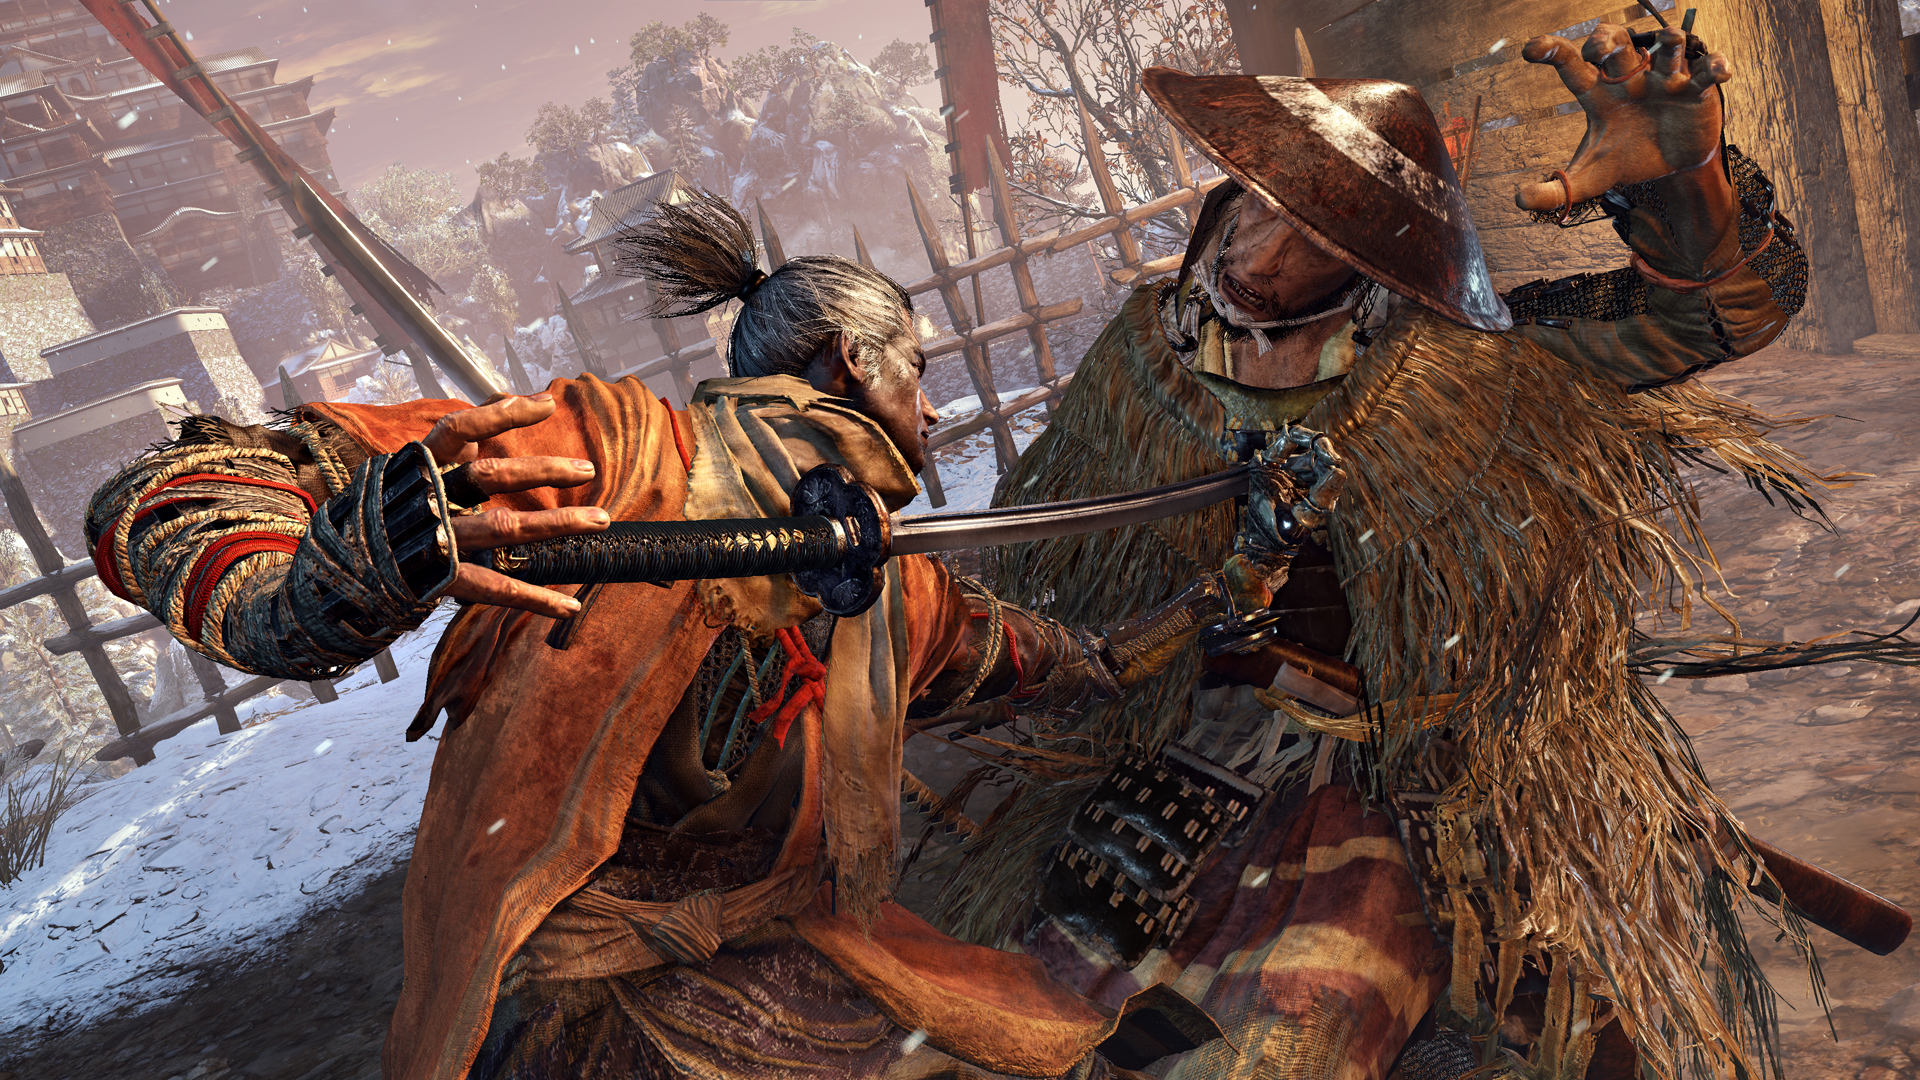 Sekiro: Shadows Die Twice is definitely not a Dark Souls game - Polygon